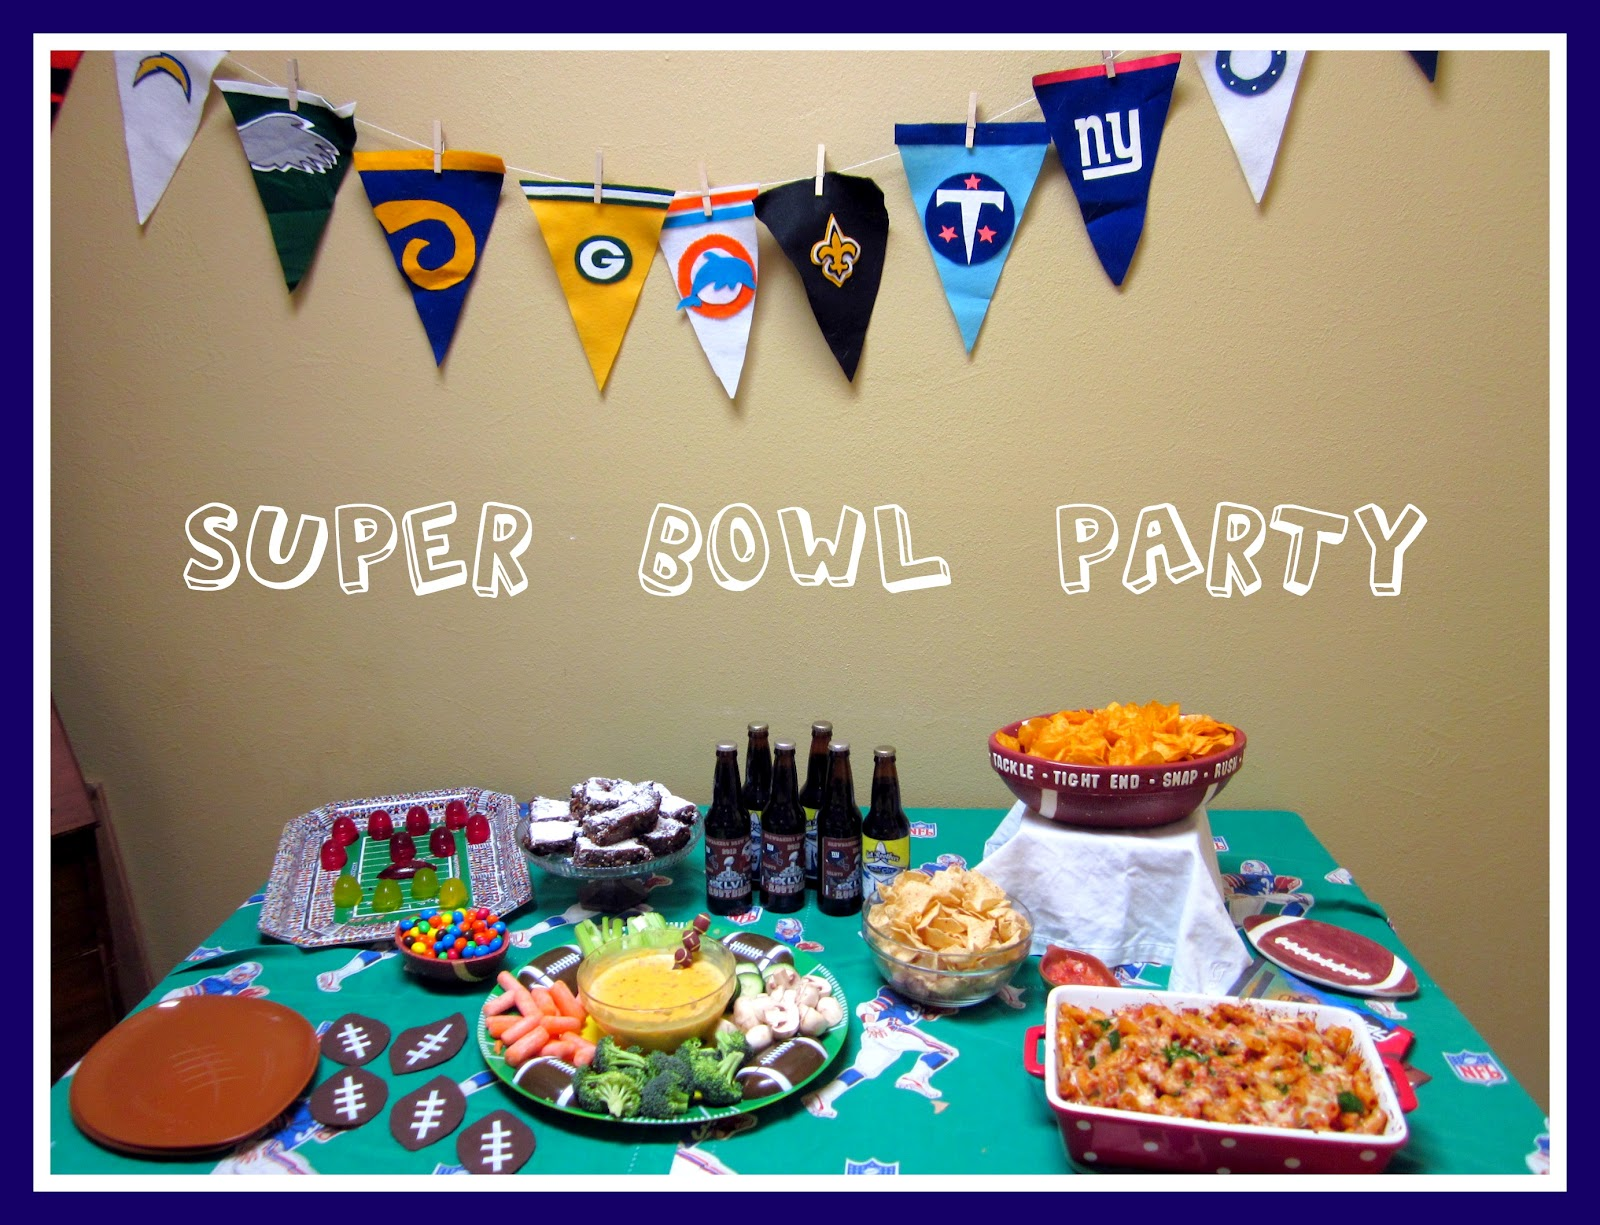 We grow by our dreams for Super bowl party items